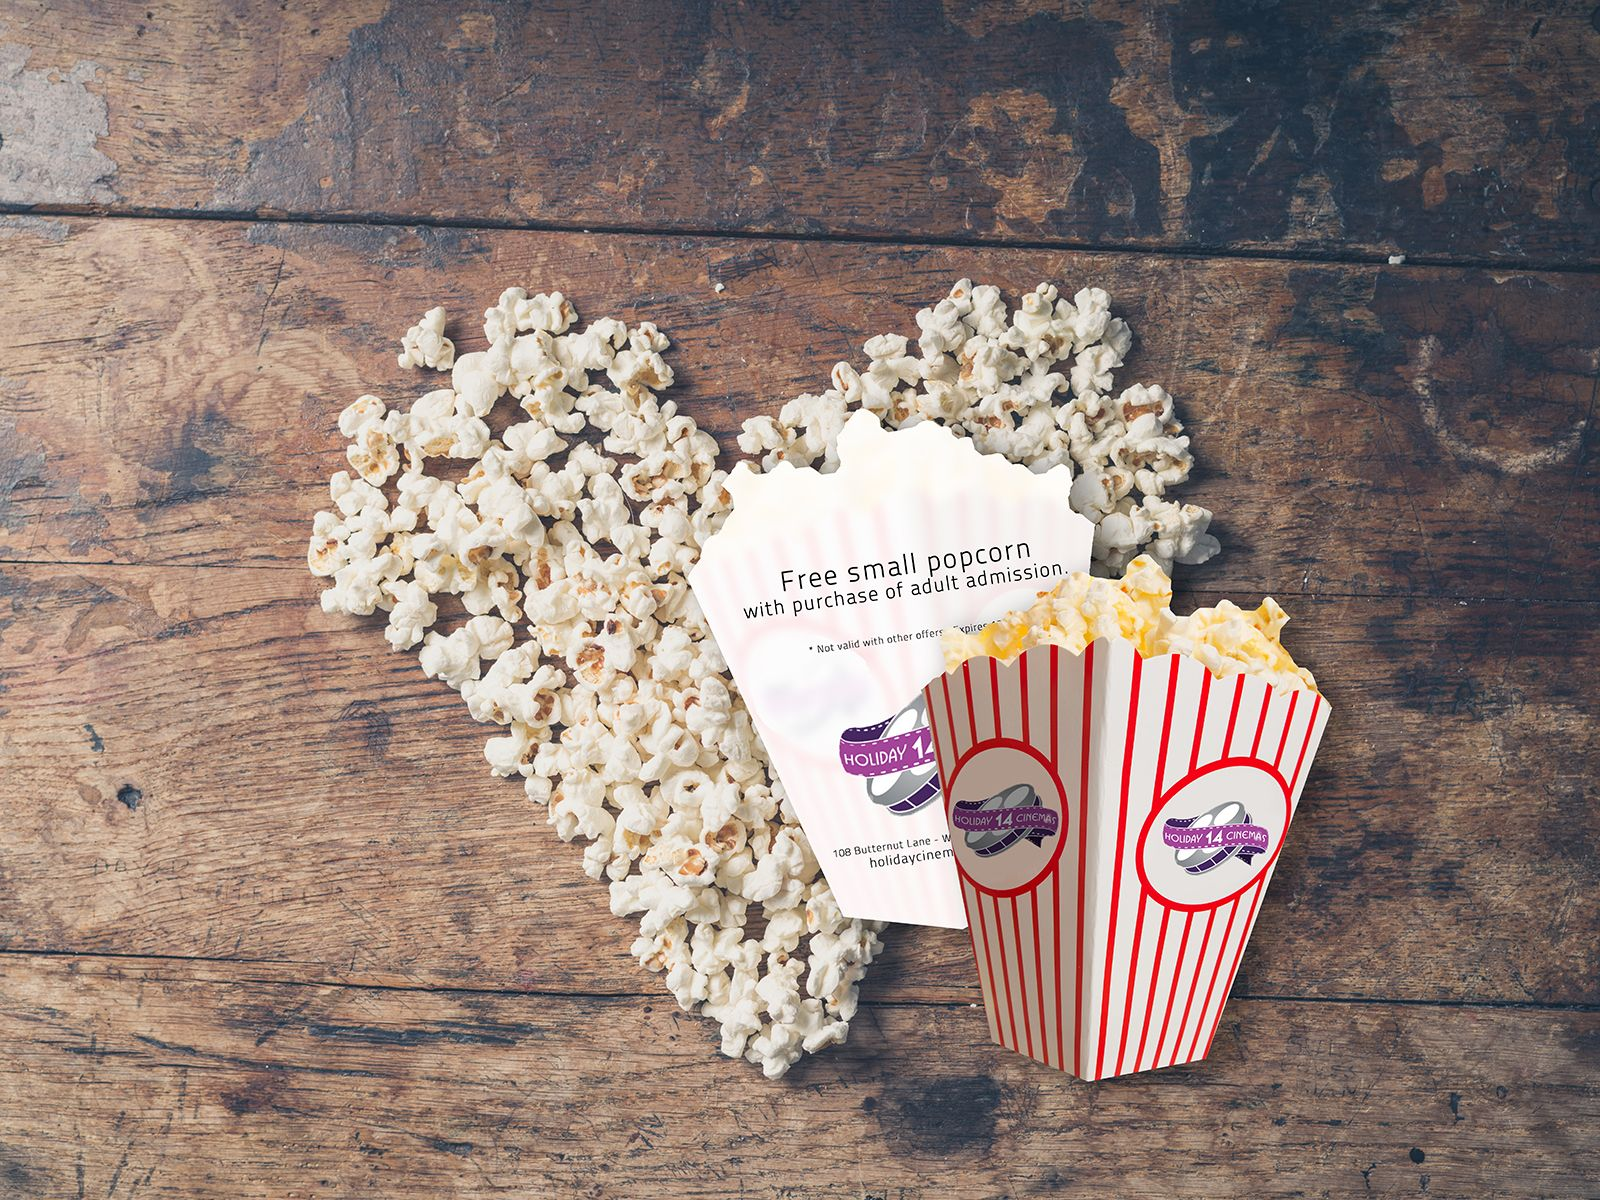 Popcorn Shaped Business Cards | Business Cards | Pinterest ...